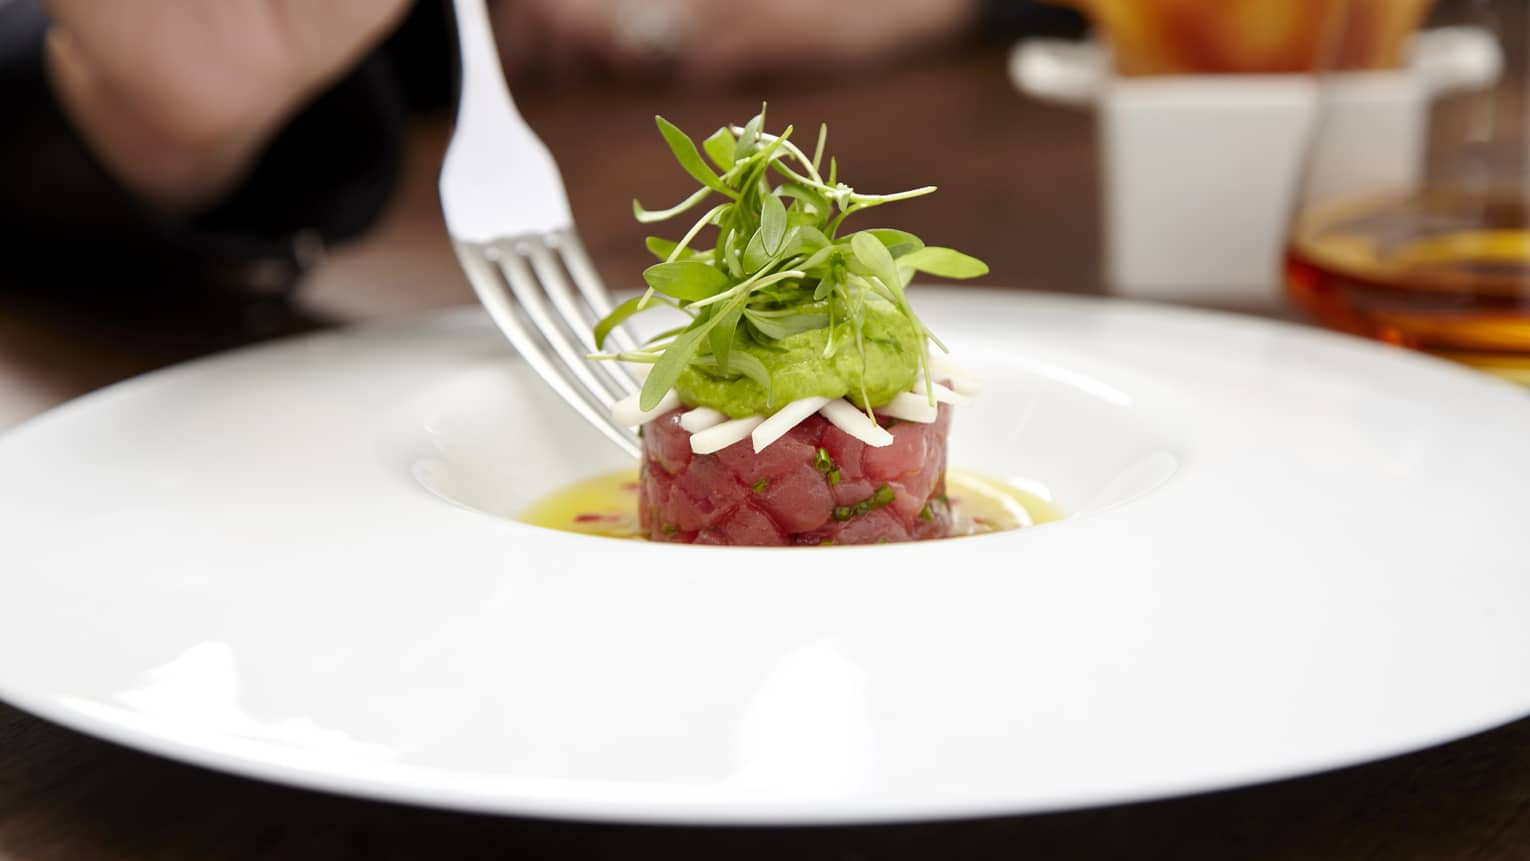 Fork over plate with small tartare topped with greens